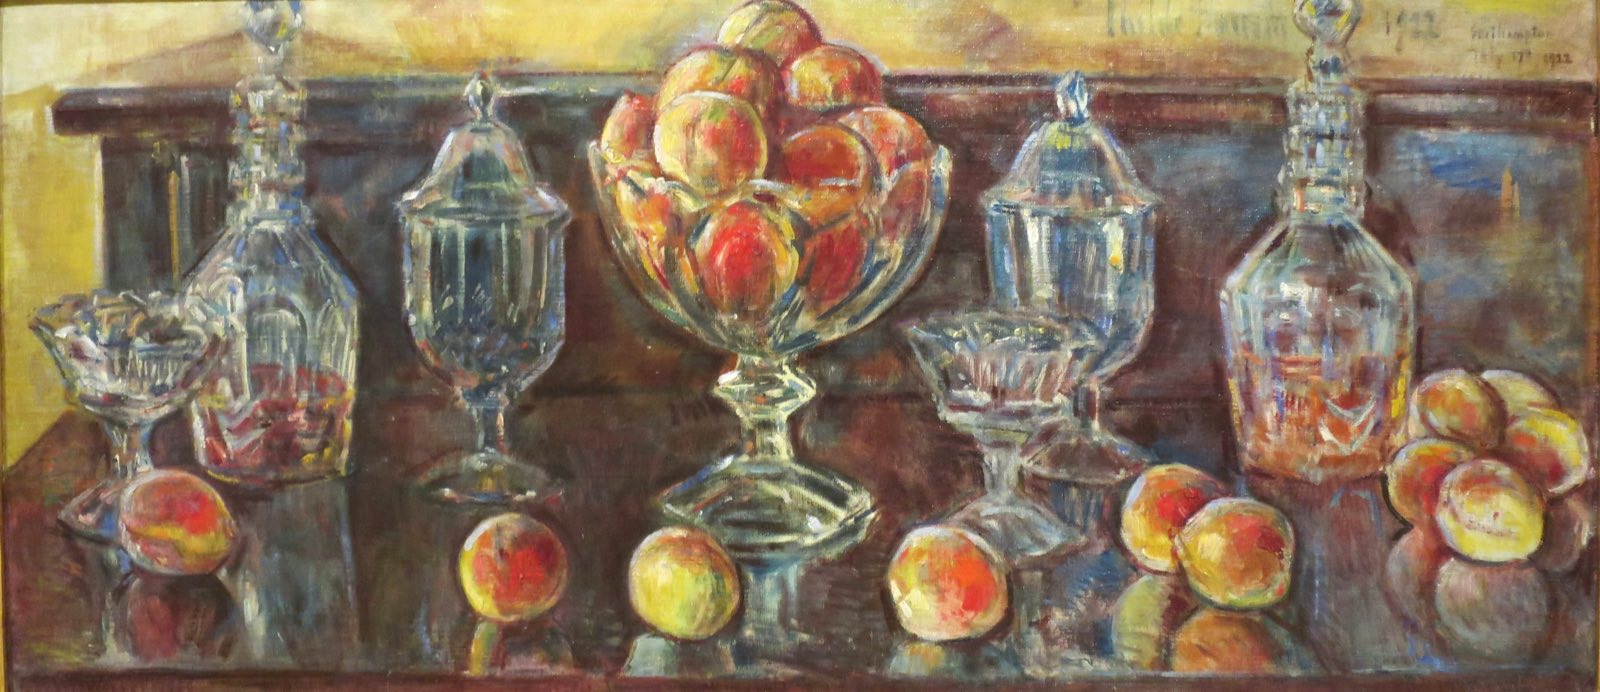 Childe_Hassam_-_'Still_Life_with_Peaches_and_Old_Glass',_oil_on_canvas_paiting_by_Childe_Hassam,_1902,_El_Paso_Museum_of_Art